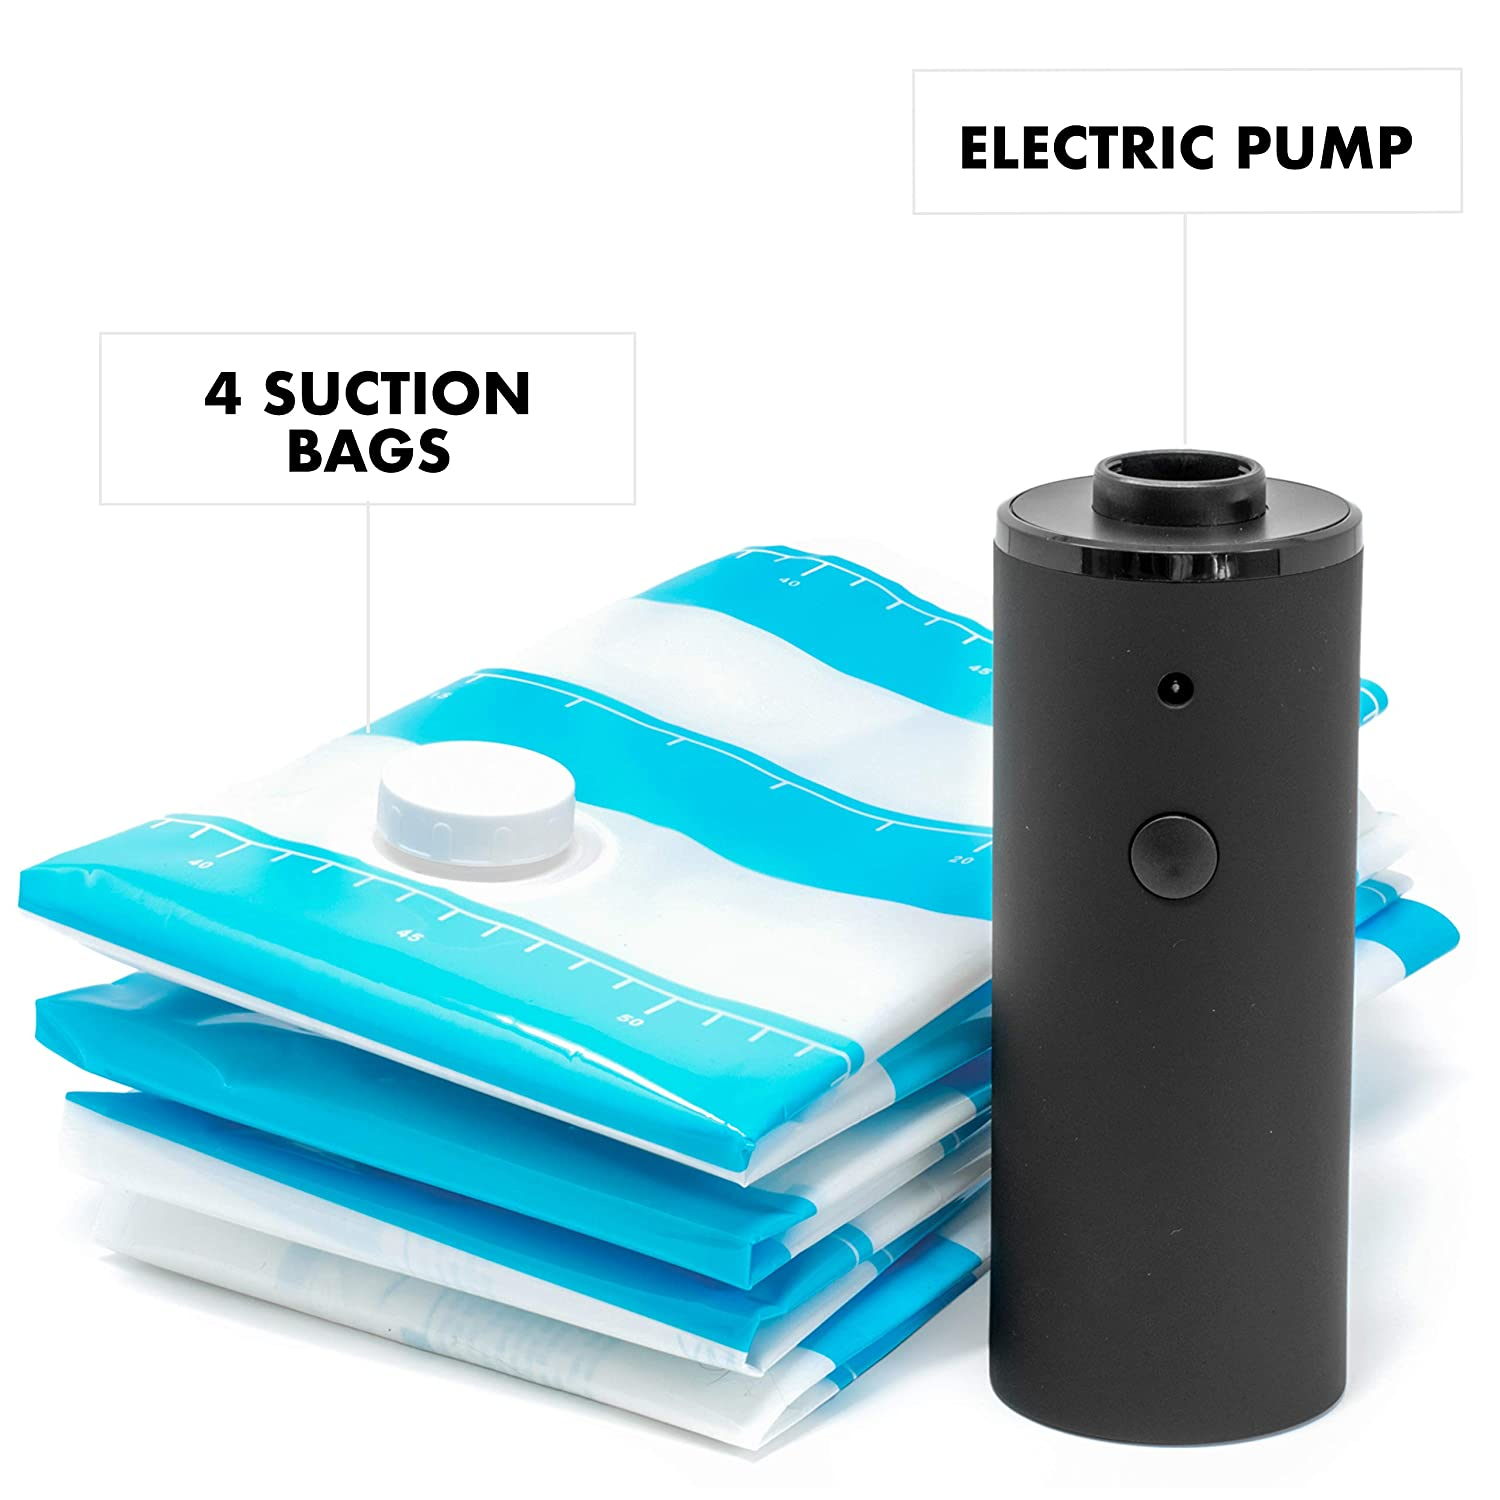 Ambran Travel Vacuum Bags with Electric Pump   4 Storage Bags   2 15x23 Bags & 2 19x27 Bags   Space Saver Bags   Portable Electric Vacuum Pump   Great Storage Bags for Home and Travel Use